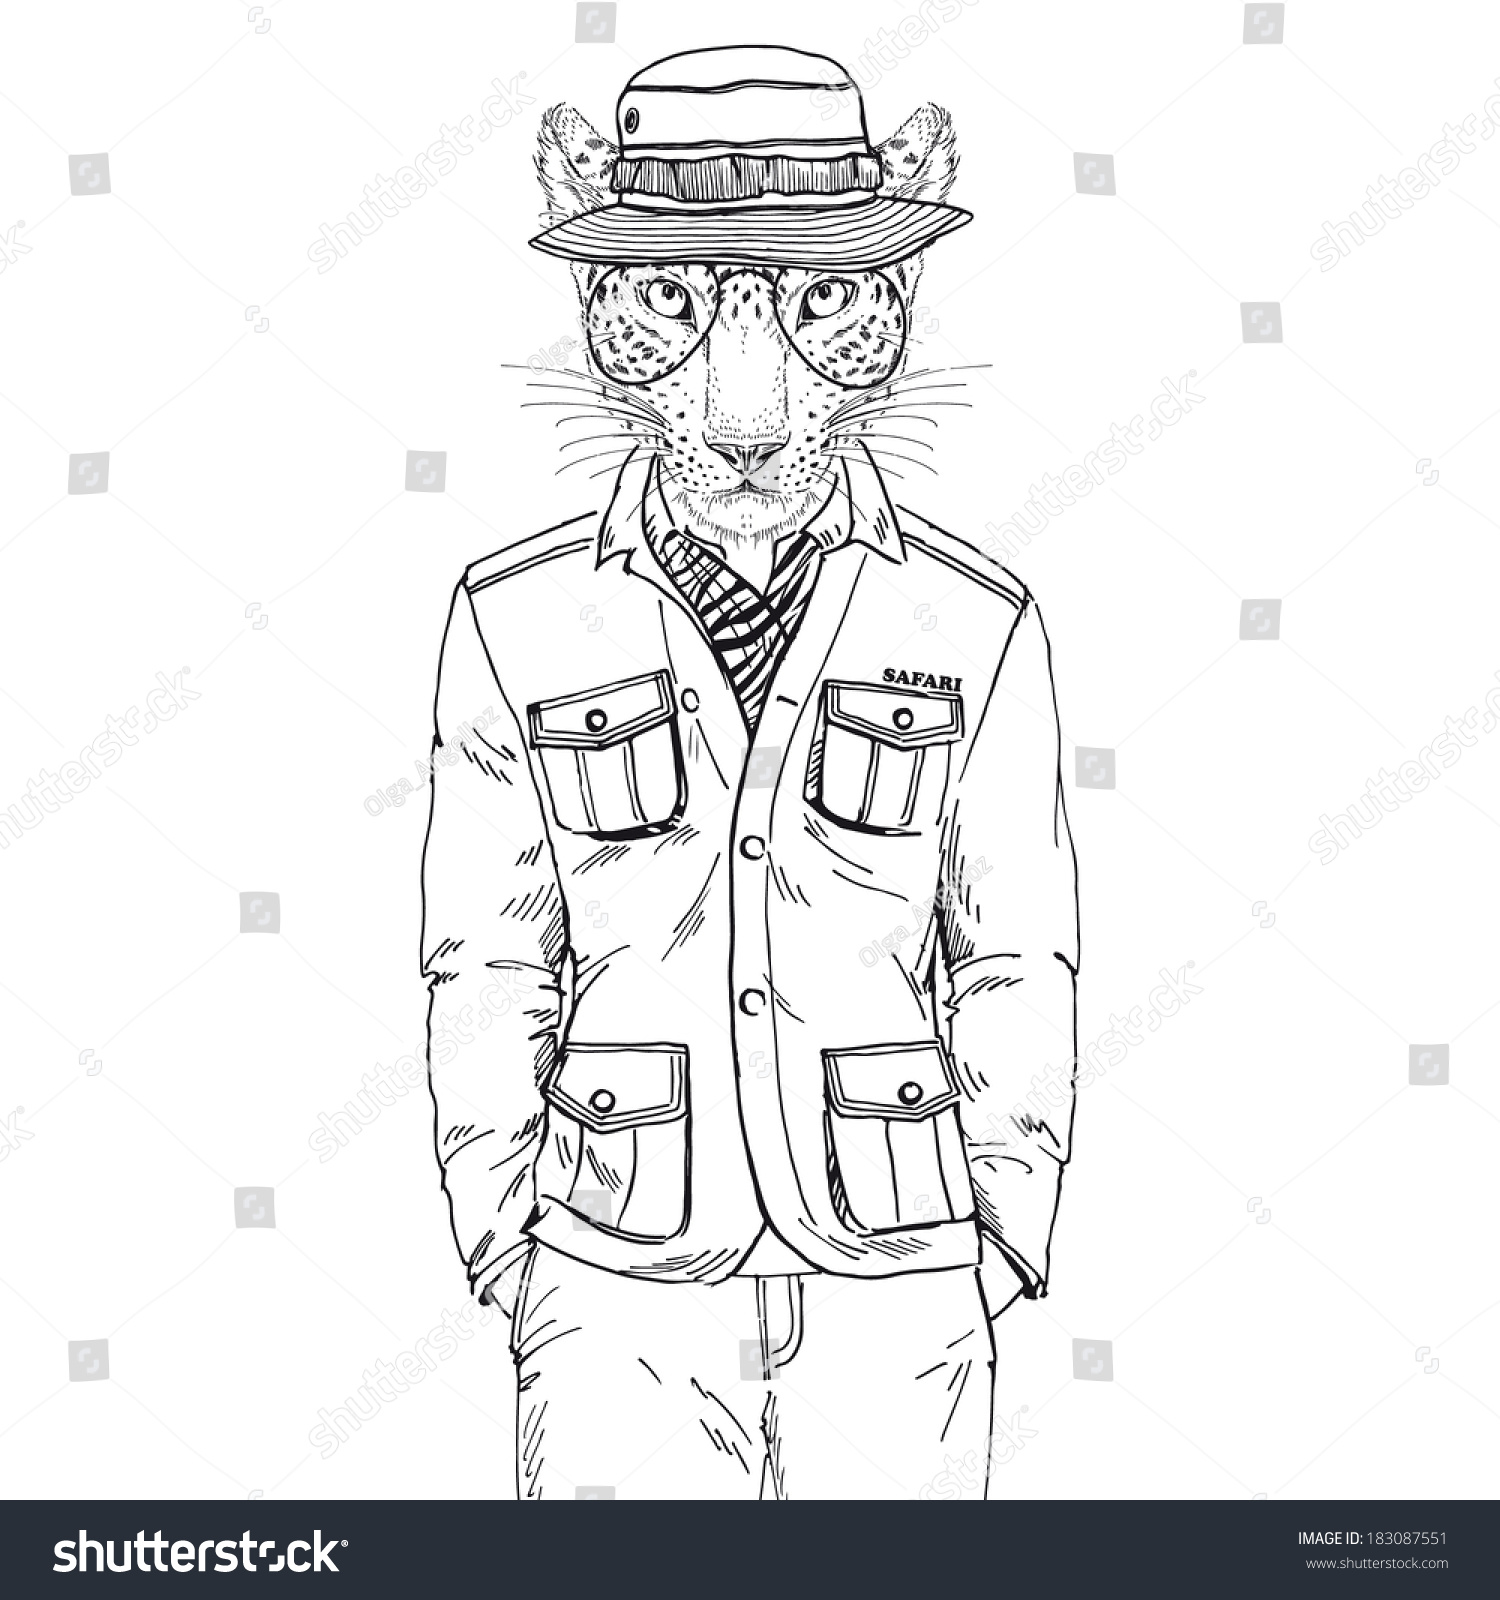 Hand Drawn One Color Sketch Leopard Stock Vector 183087551 - Shutterstock